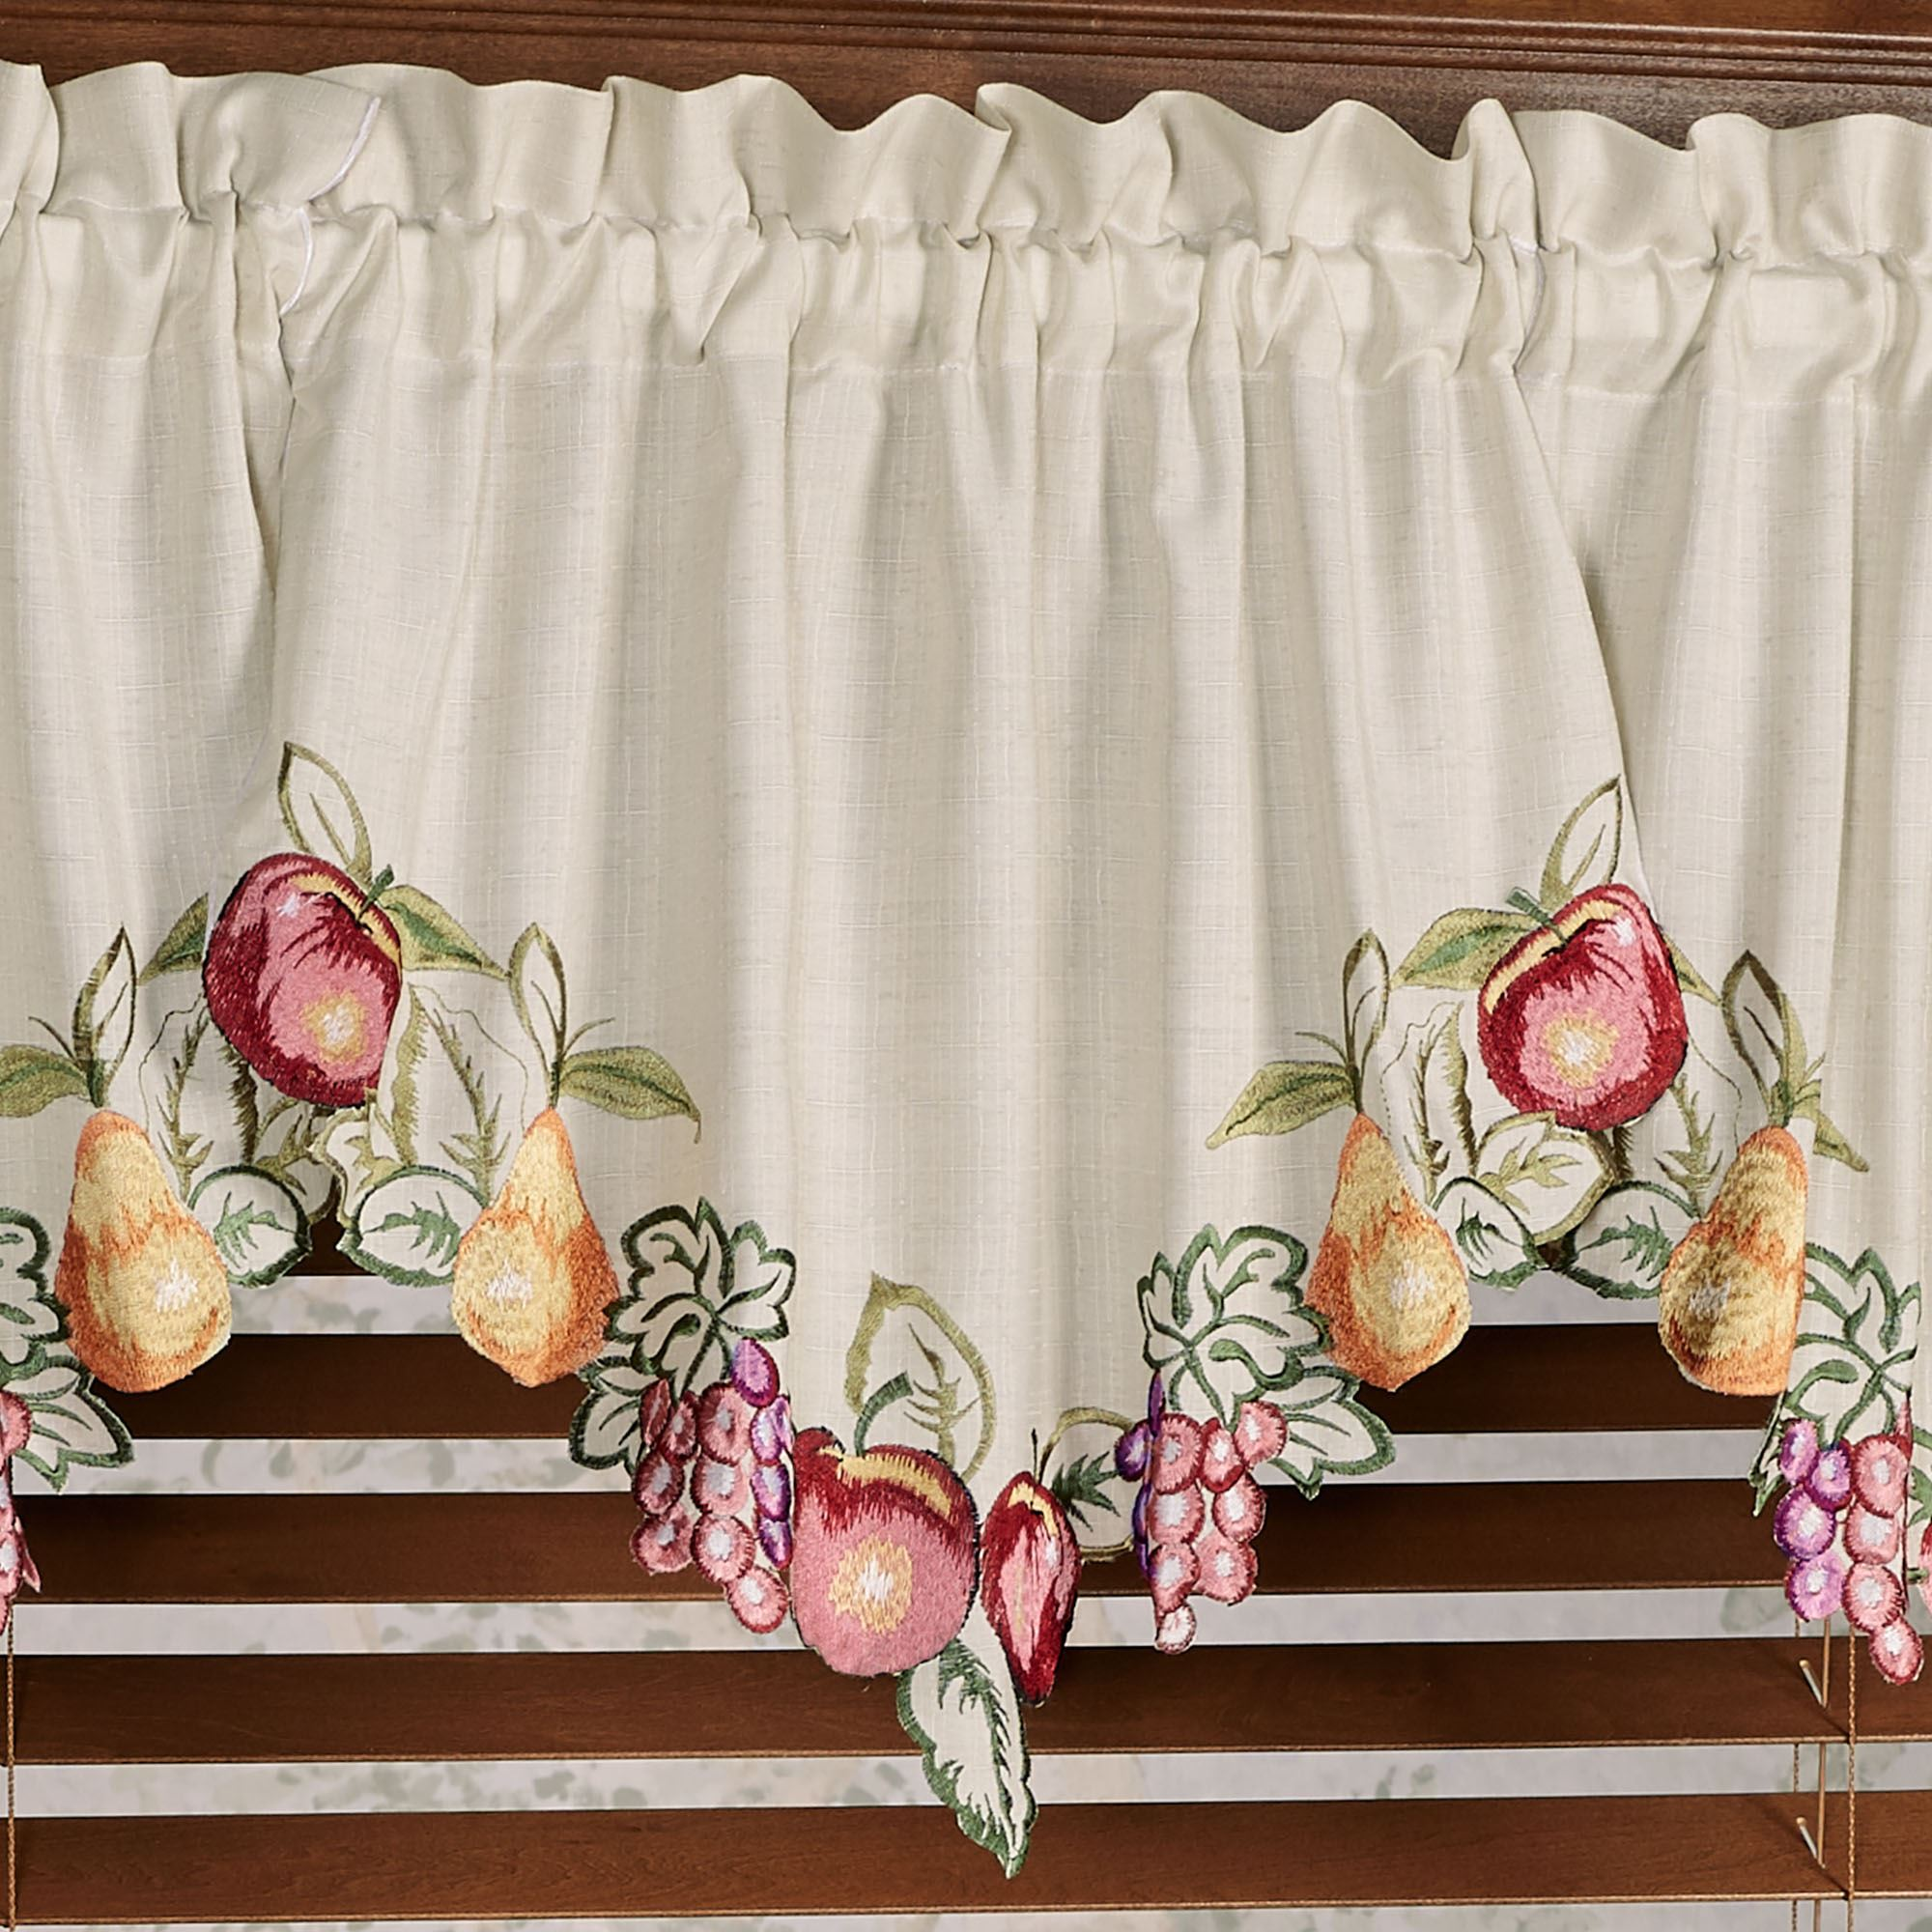 Fruitful Embroidered Kitchen Swag Valances And Tier Curtains